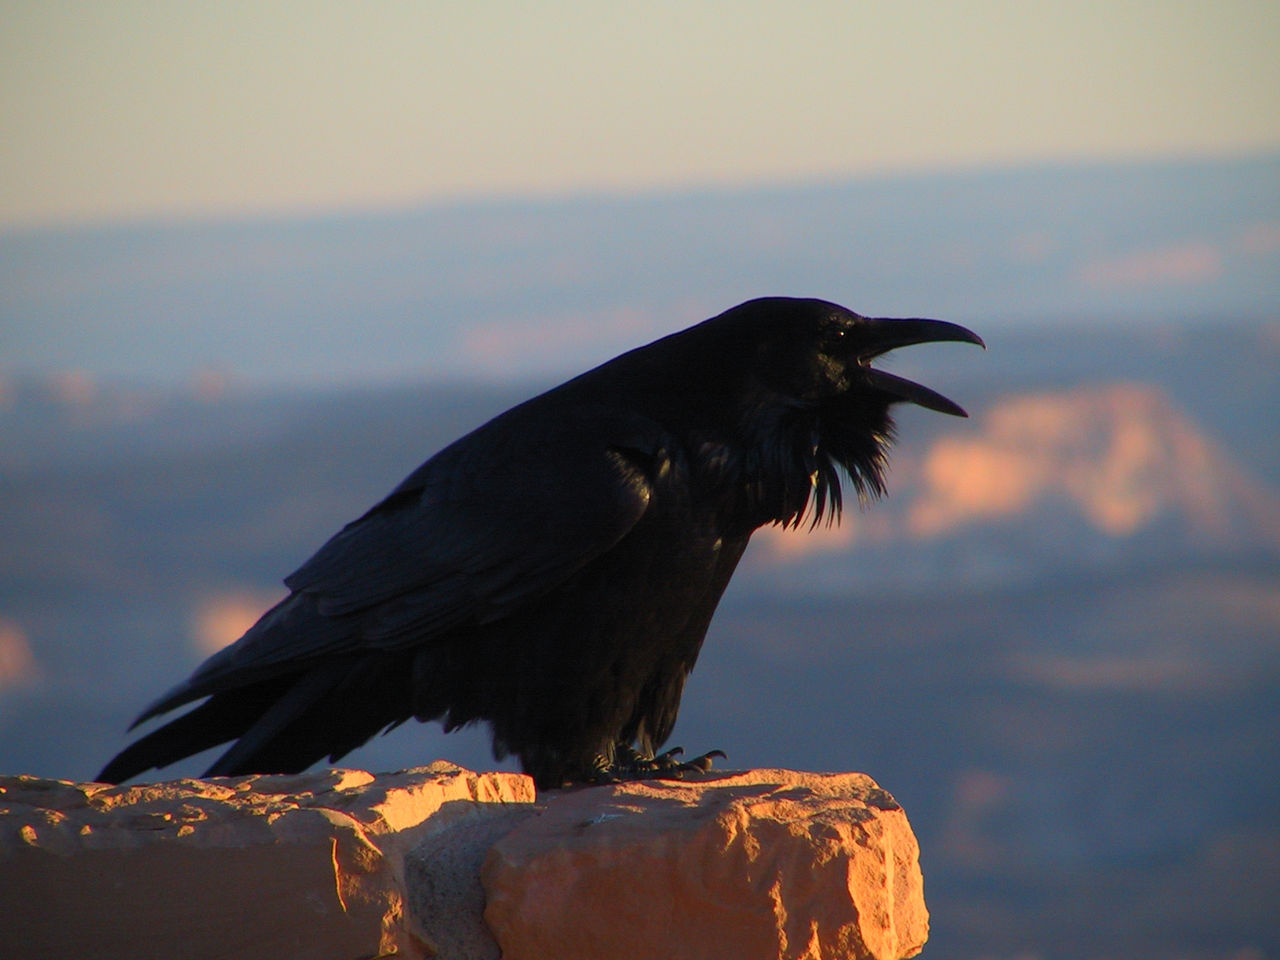 Raven in Bryce Canyon, Utah. Photo: US NPS via wikimedia commons